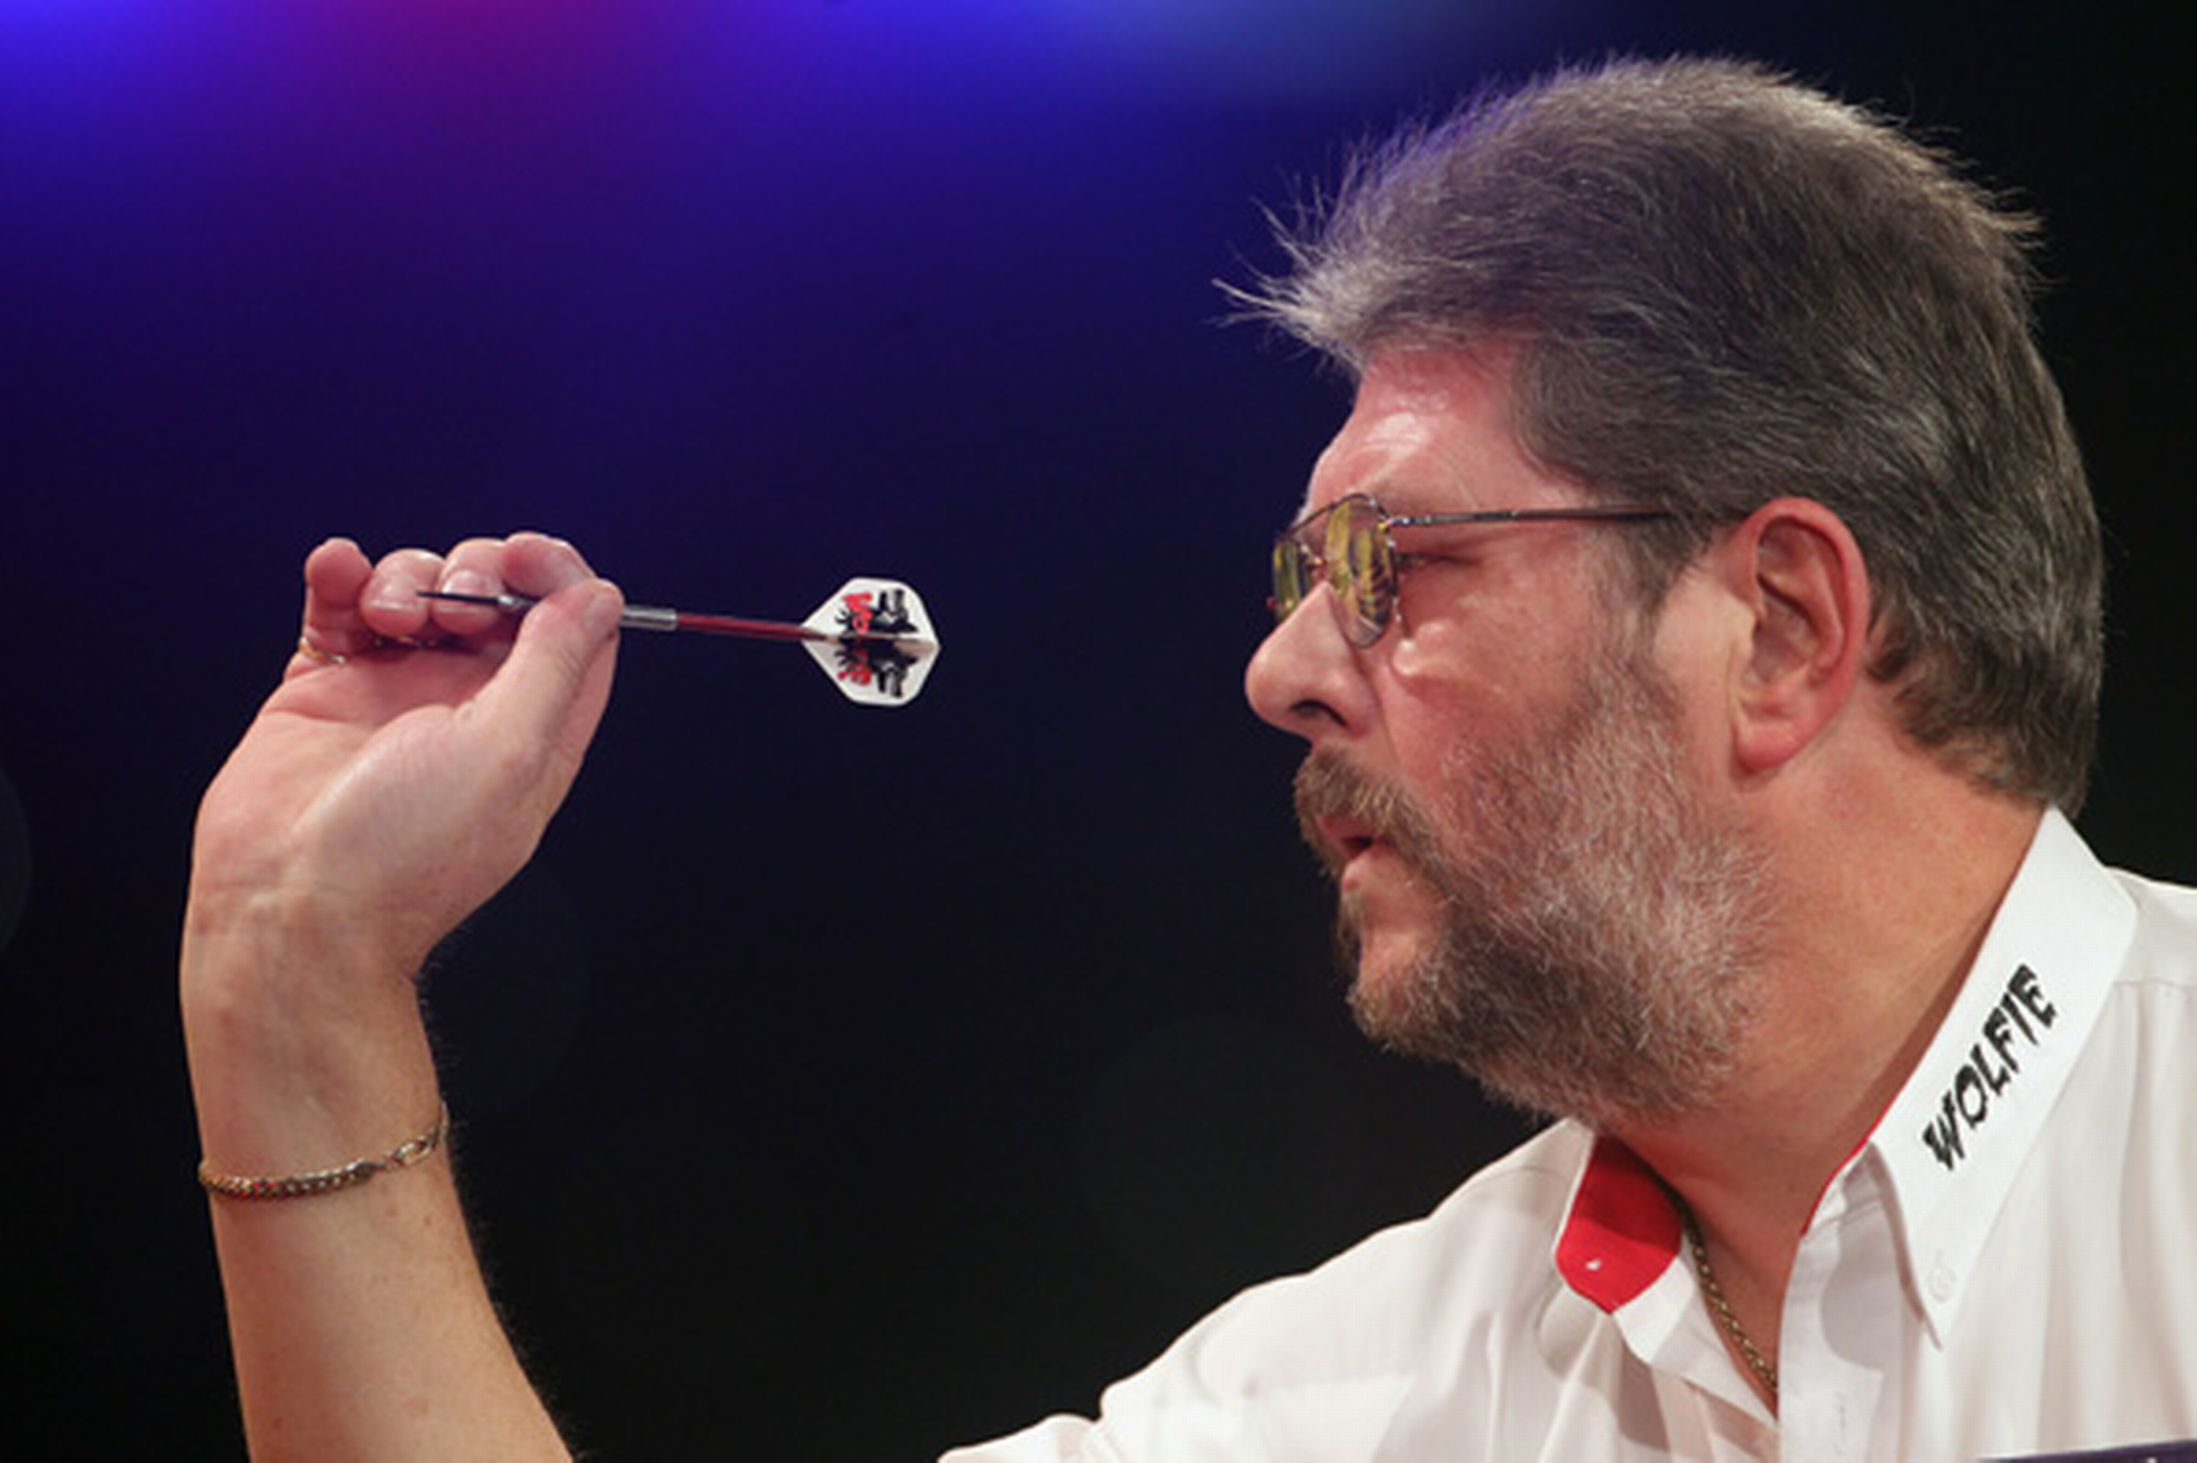 Does anybody know for how long darts has been played?